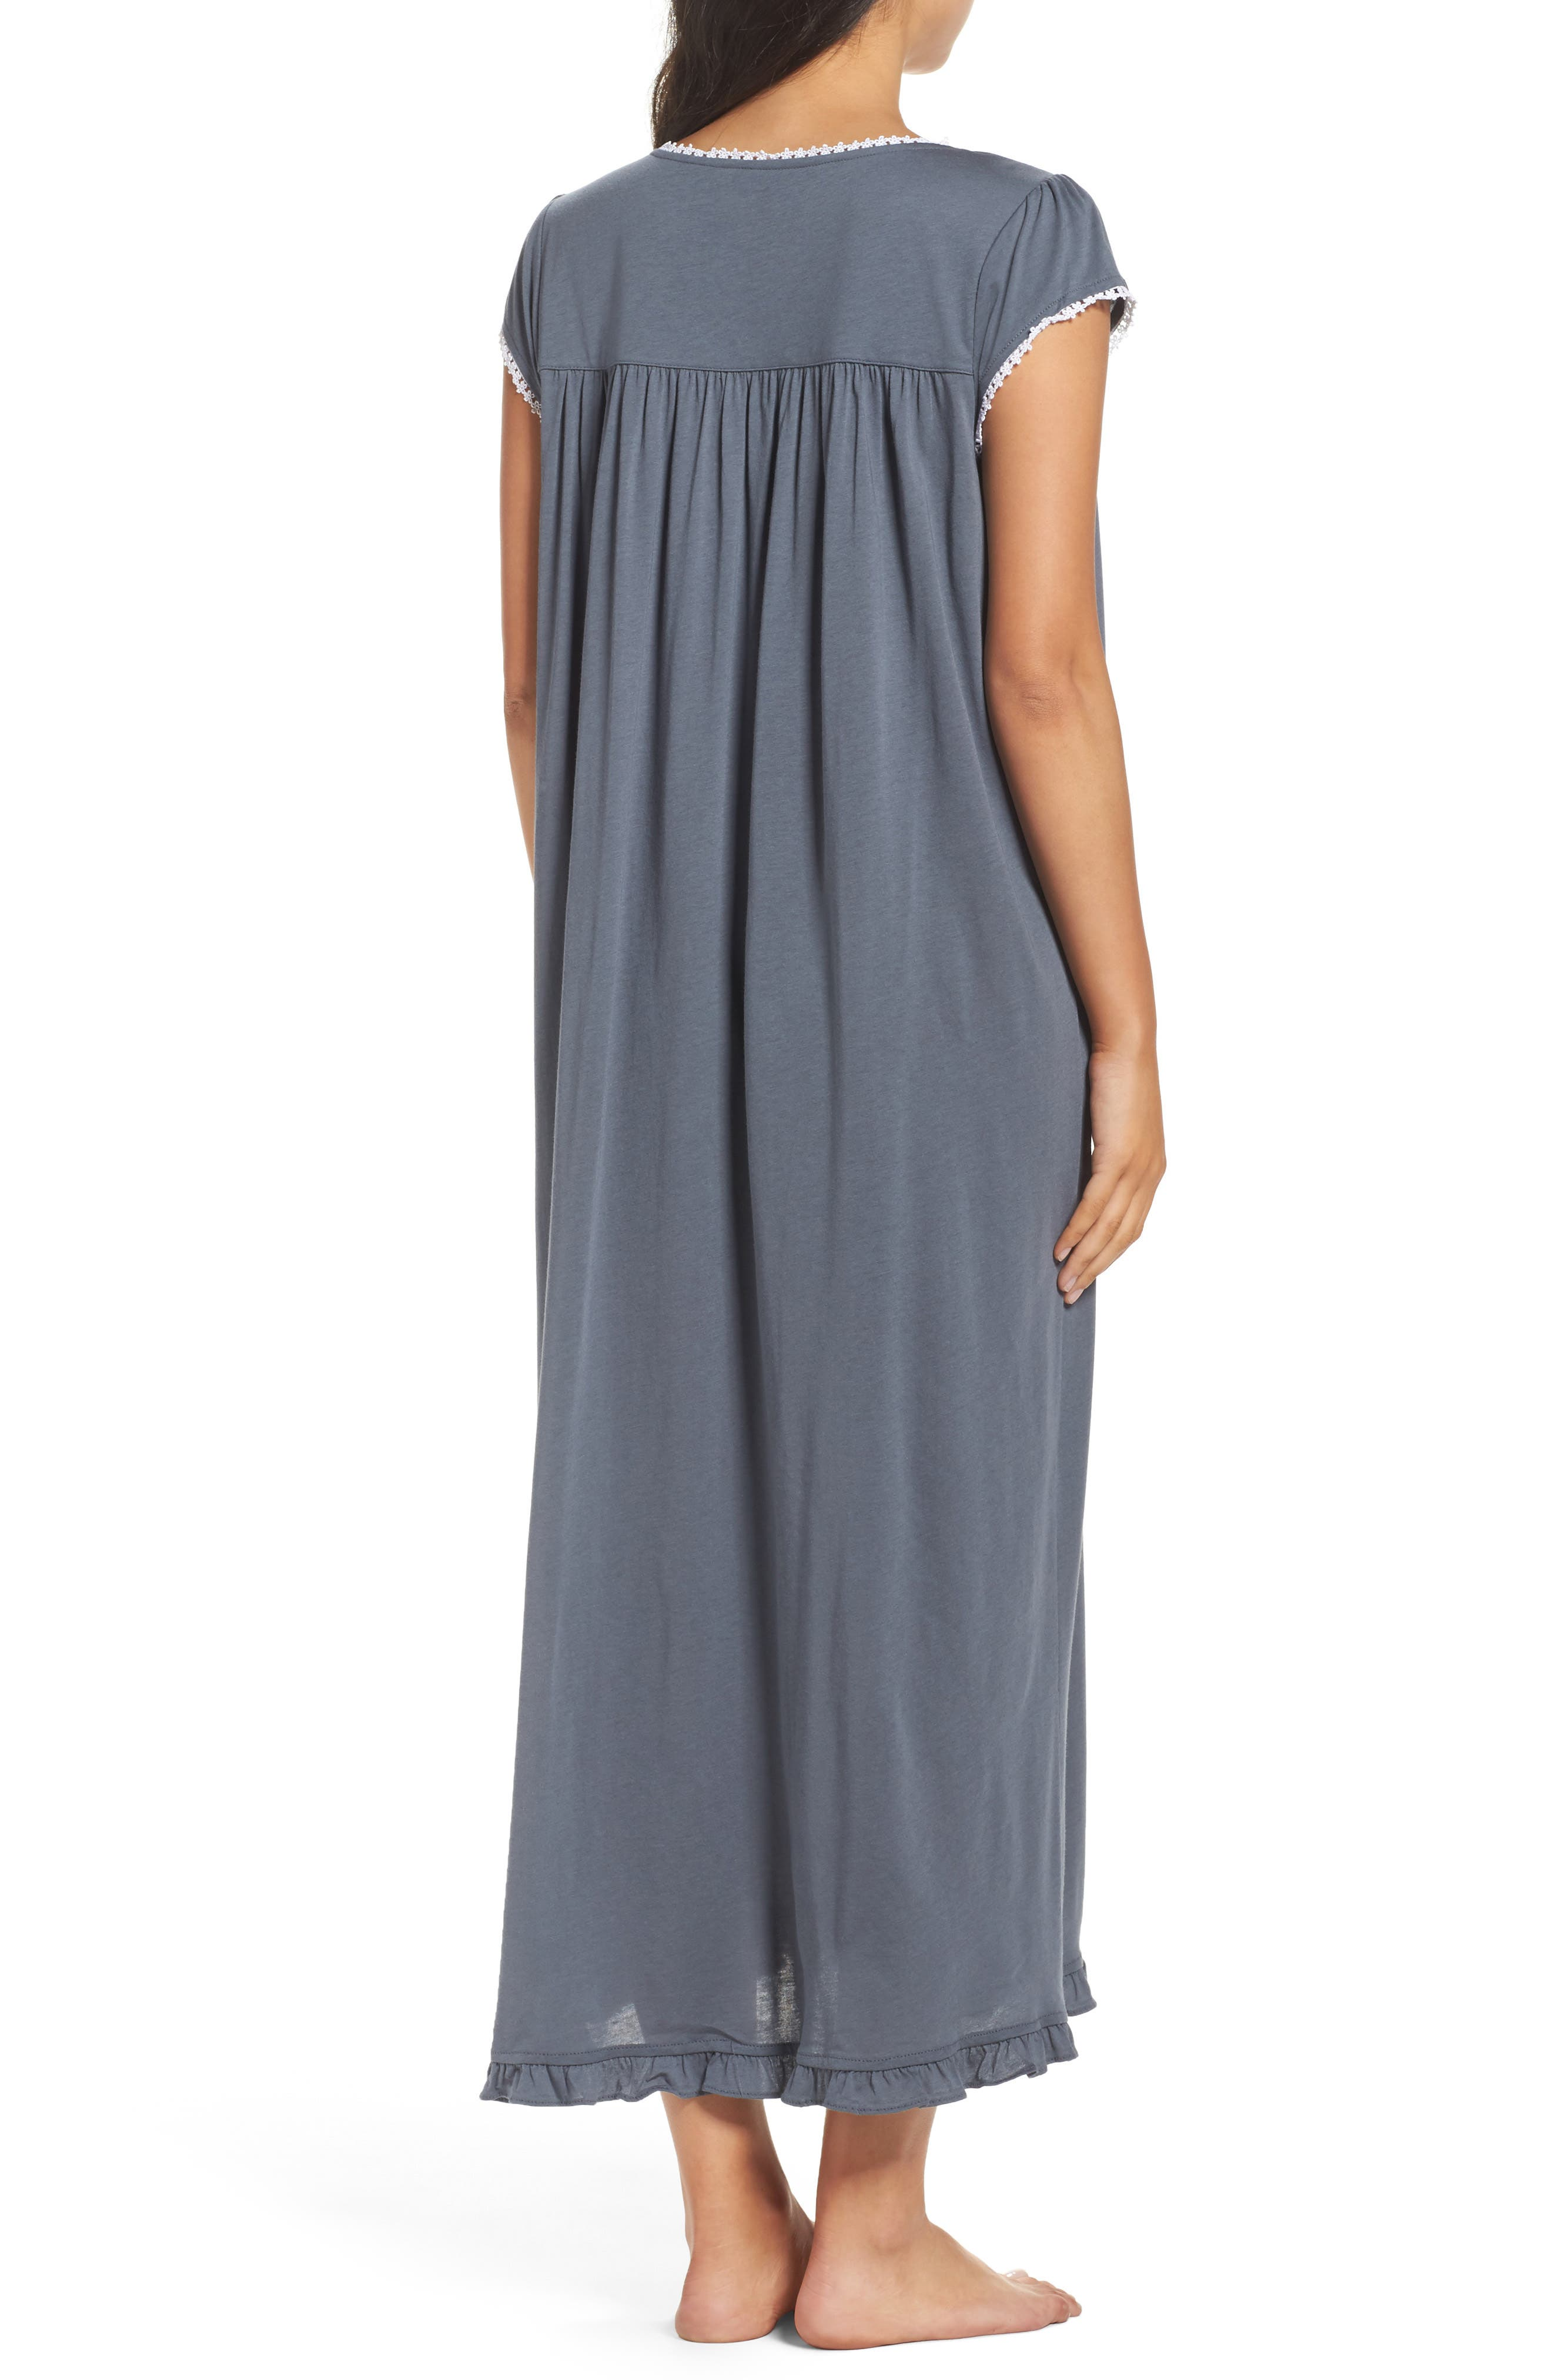 Cotton & Modal Ballet Nightgown,                             Alternate thumbnail 2, color,                             001